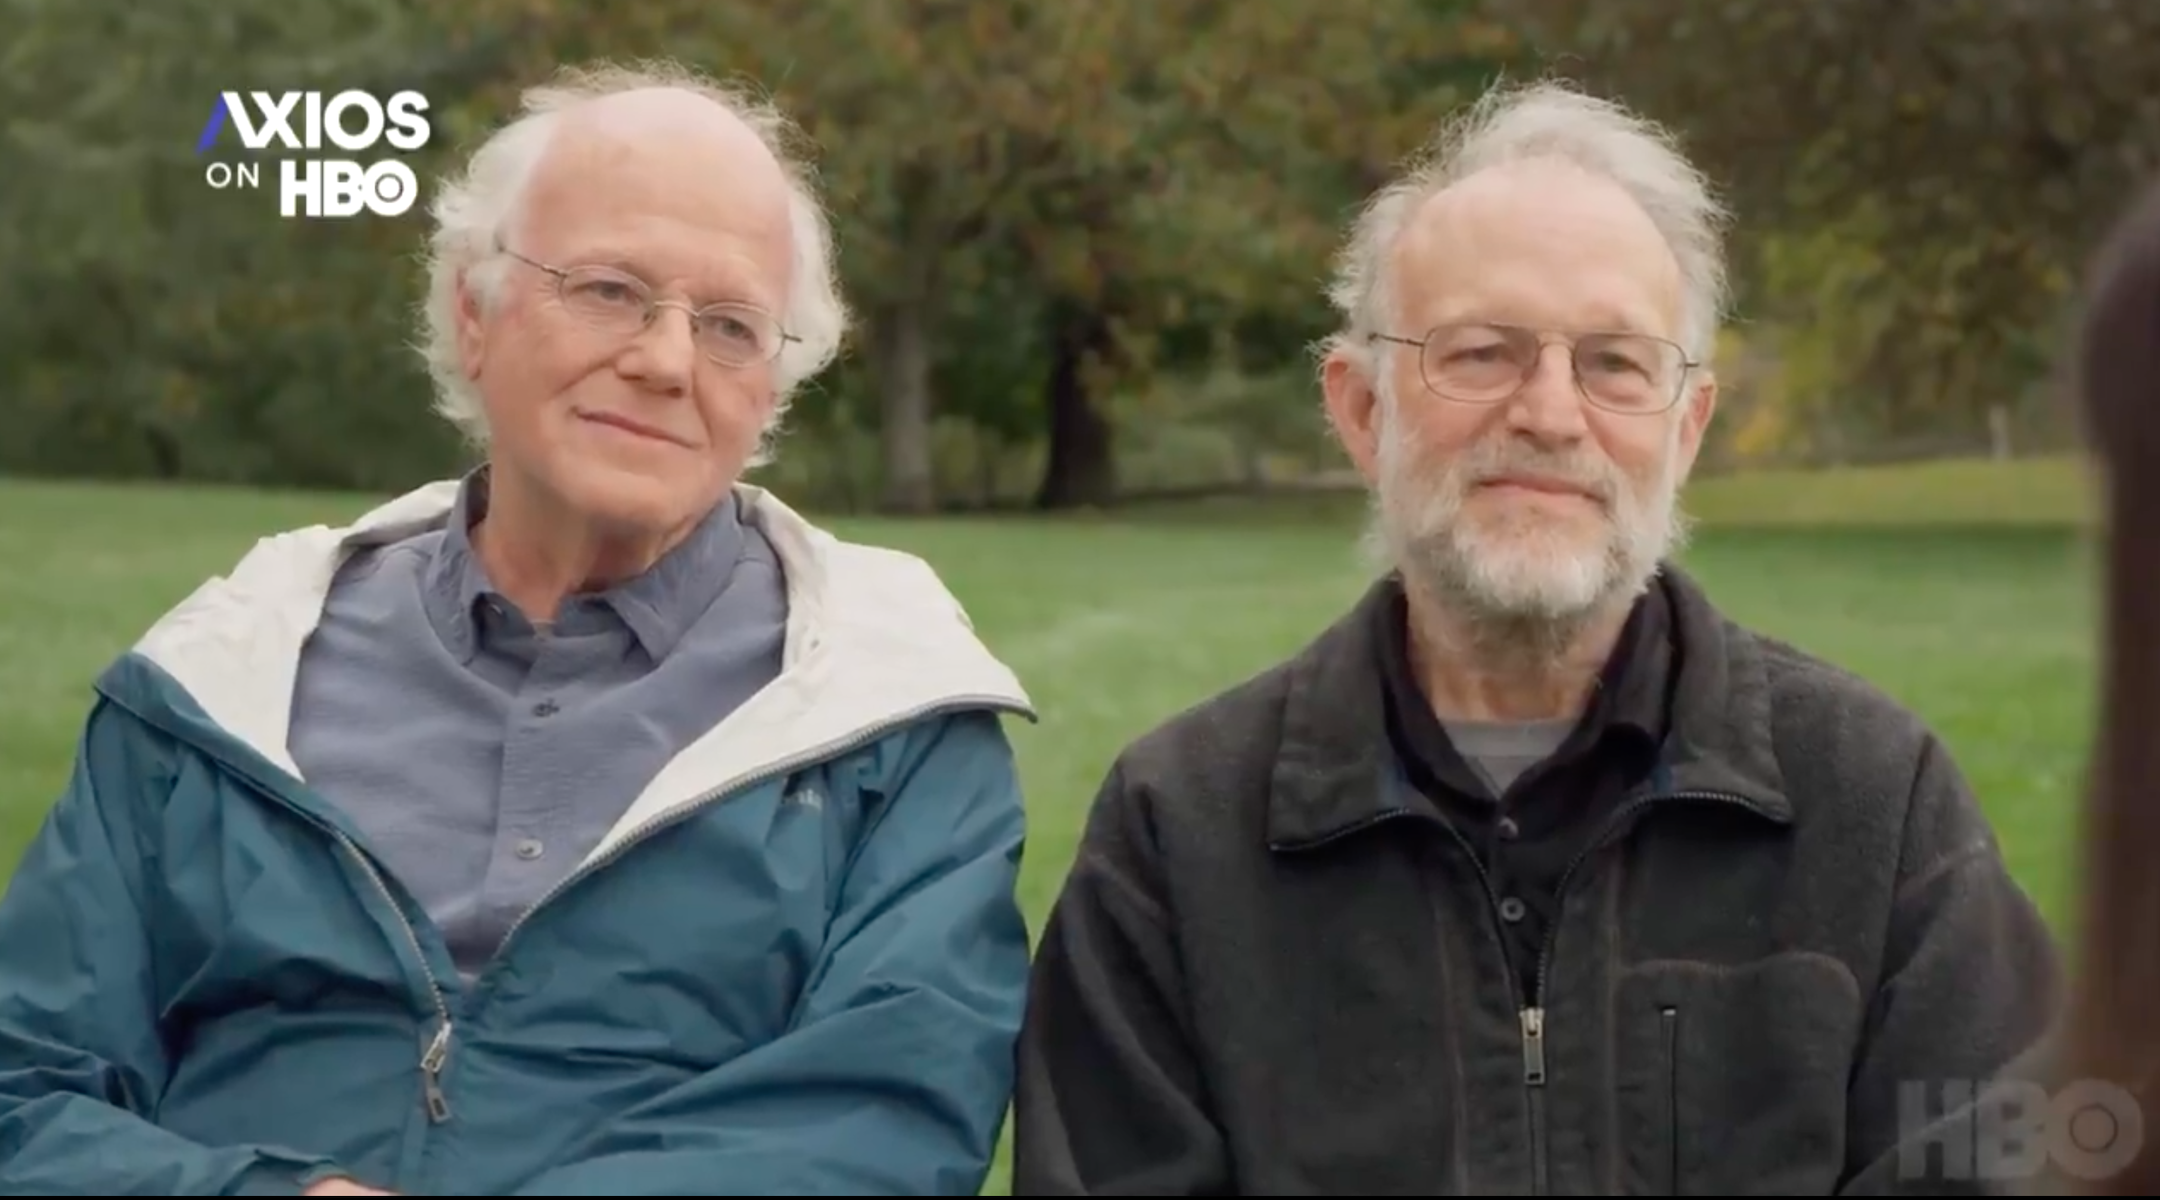 Ben Cohen and Jerry Greenfield, who founded Ben & Jerry's in 1978, spoke about the company's decision to stop selling ice cream in the West Bank in an interview with Axios released Sunday. (Screenshot)